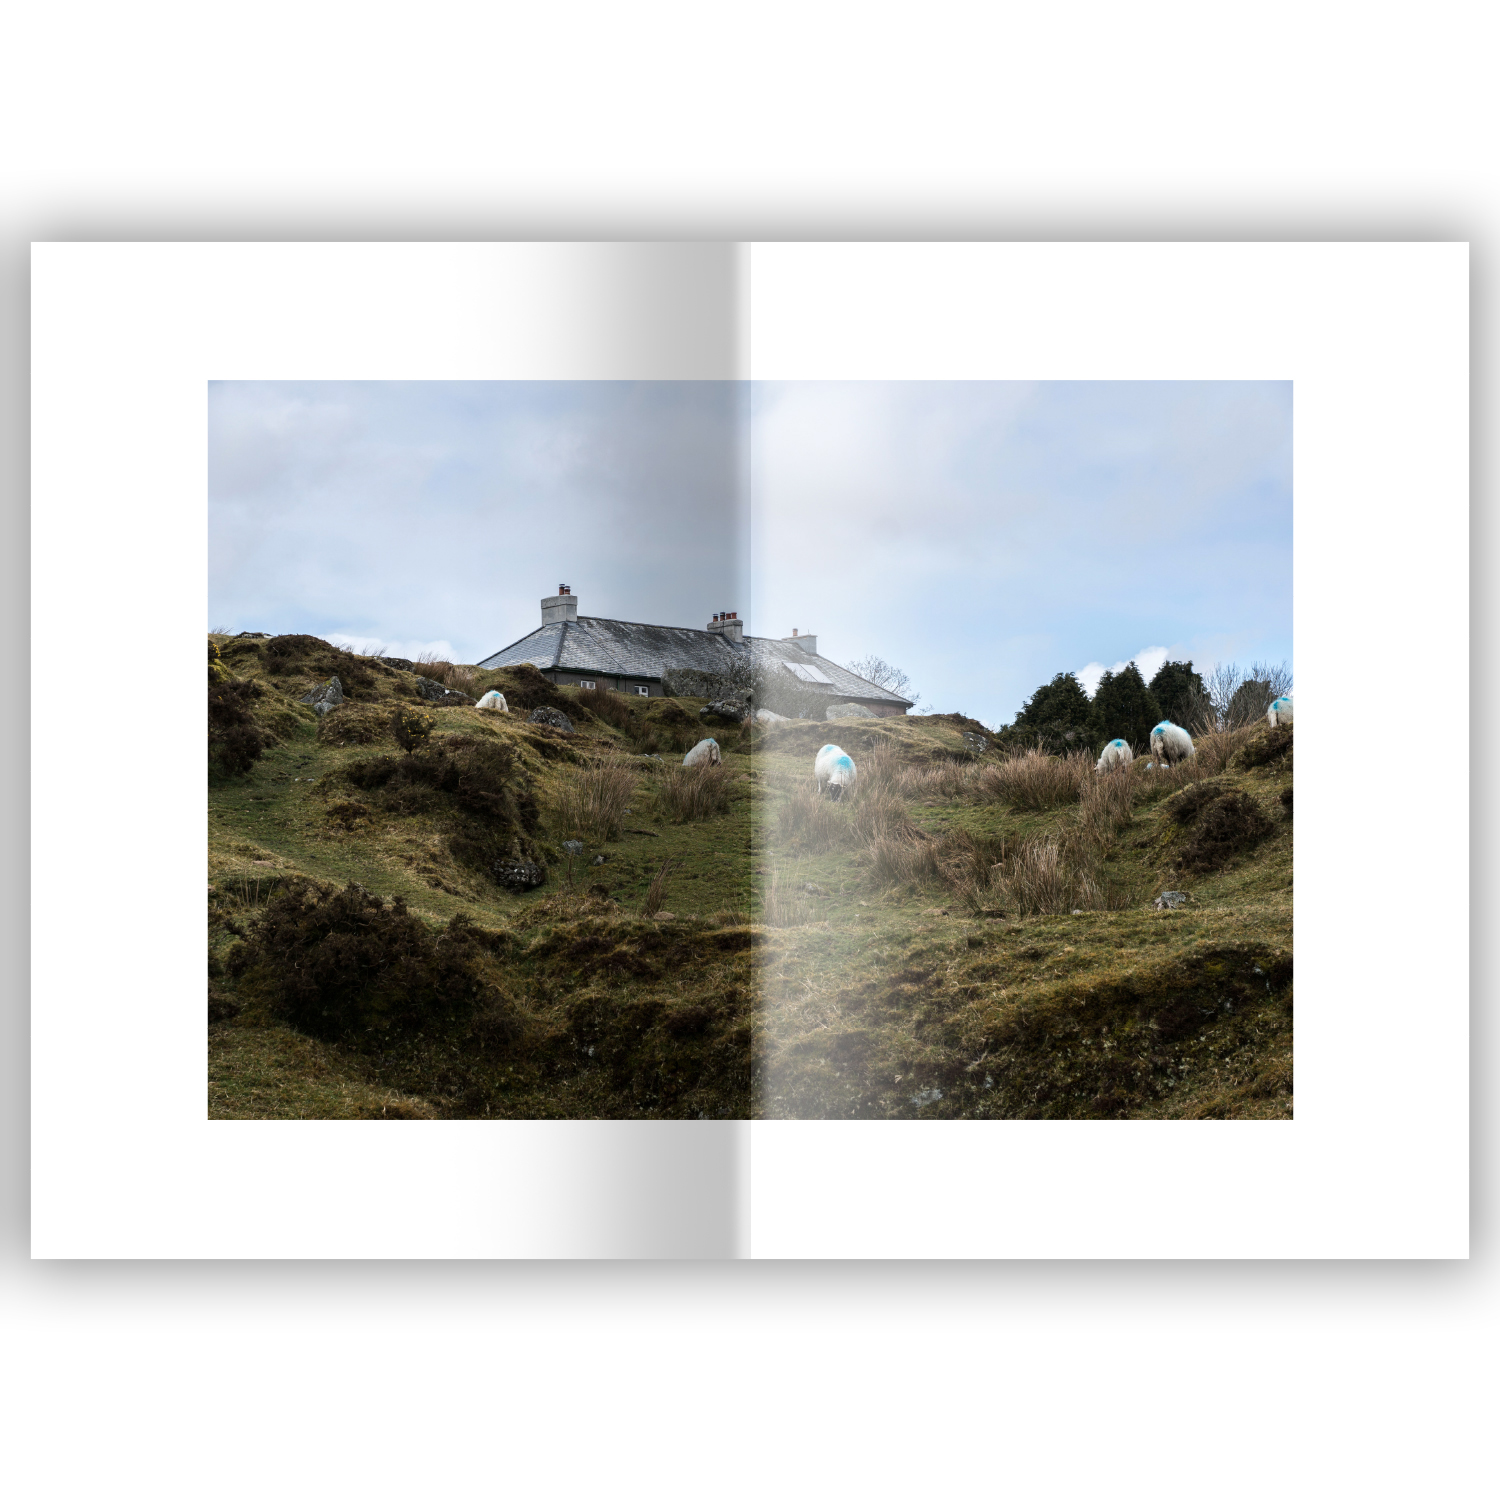 dartmoor a visual essay jonathan crabtree imagery